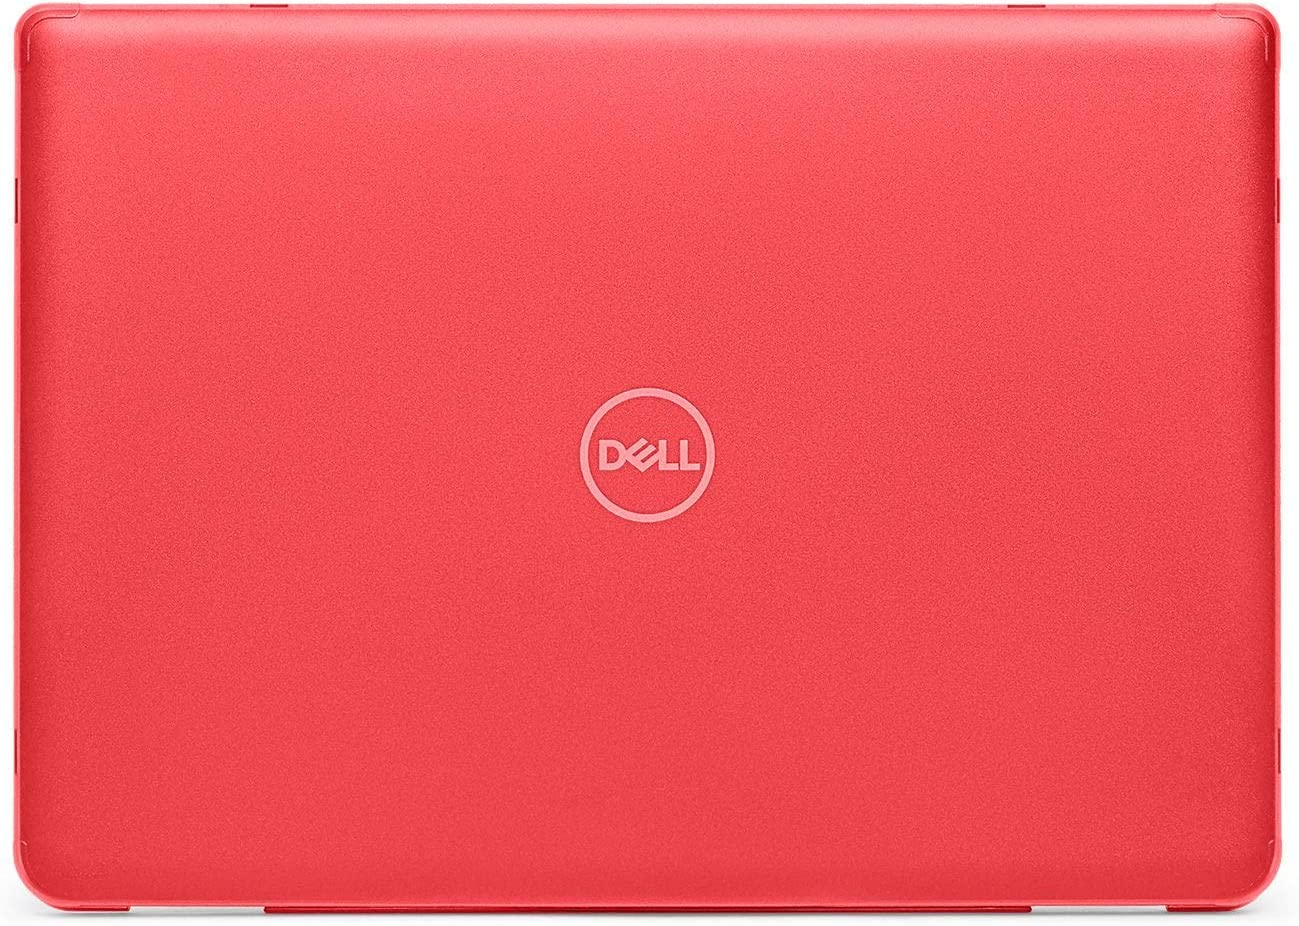 "mCover Hard Shell Case for New 2020 14"" Dell Latitude 3410 Laptop Computers (NOT Compatible with Other Dell Latitude Computers) (Red)"